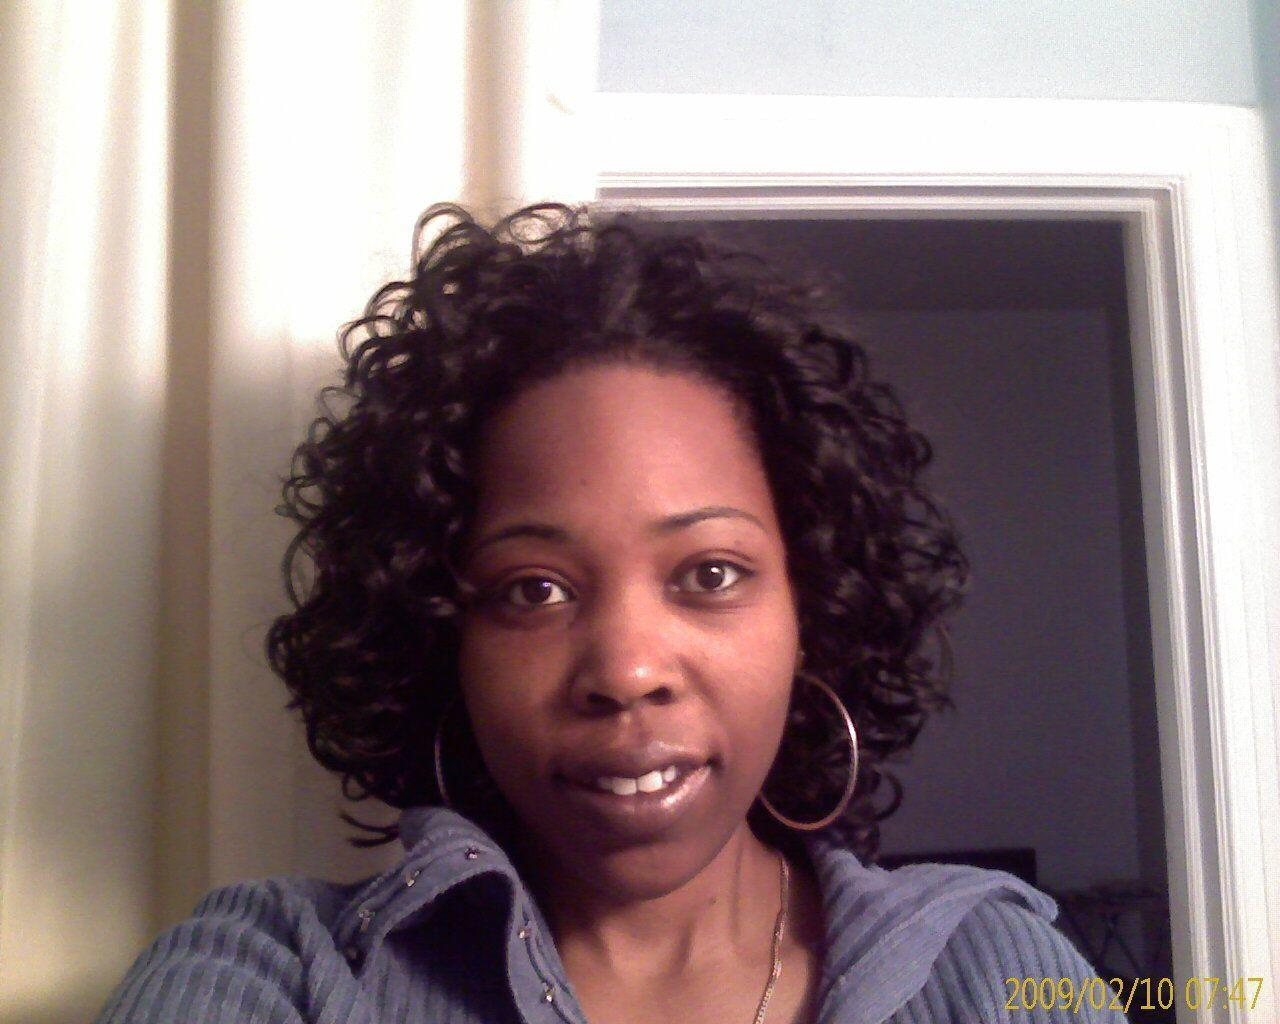 cross city lesbian personals Shemeetsher meeting black lesbian women just got easier shemeetshercom is a lesbian dating website for black gay singles created with the intent of offering a platform to foster healthy and sustaining relationships to those in the black lesbian community.